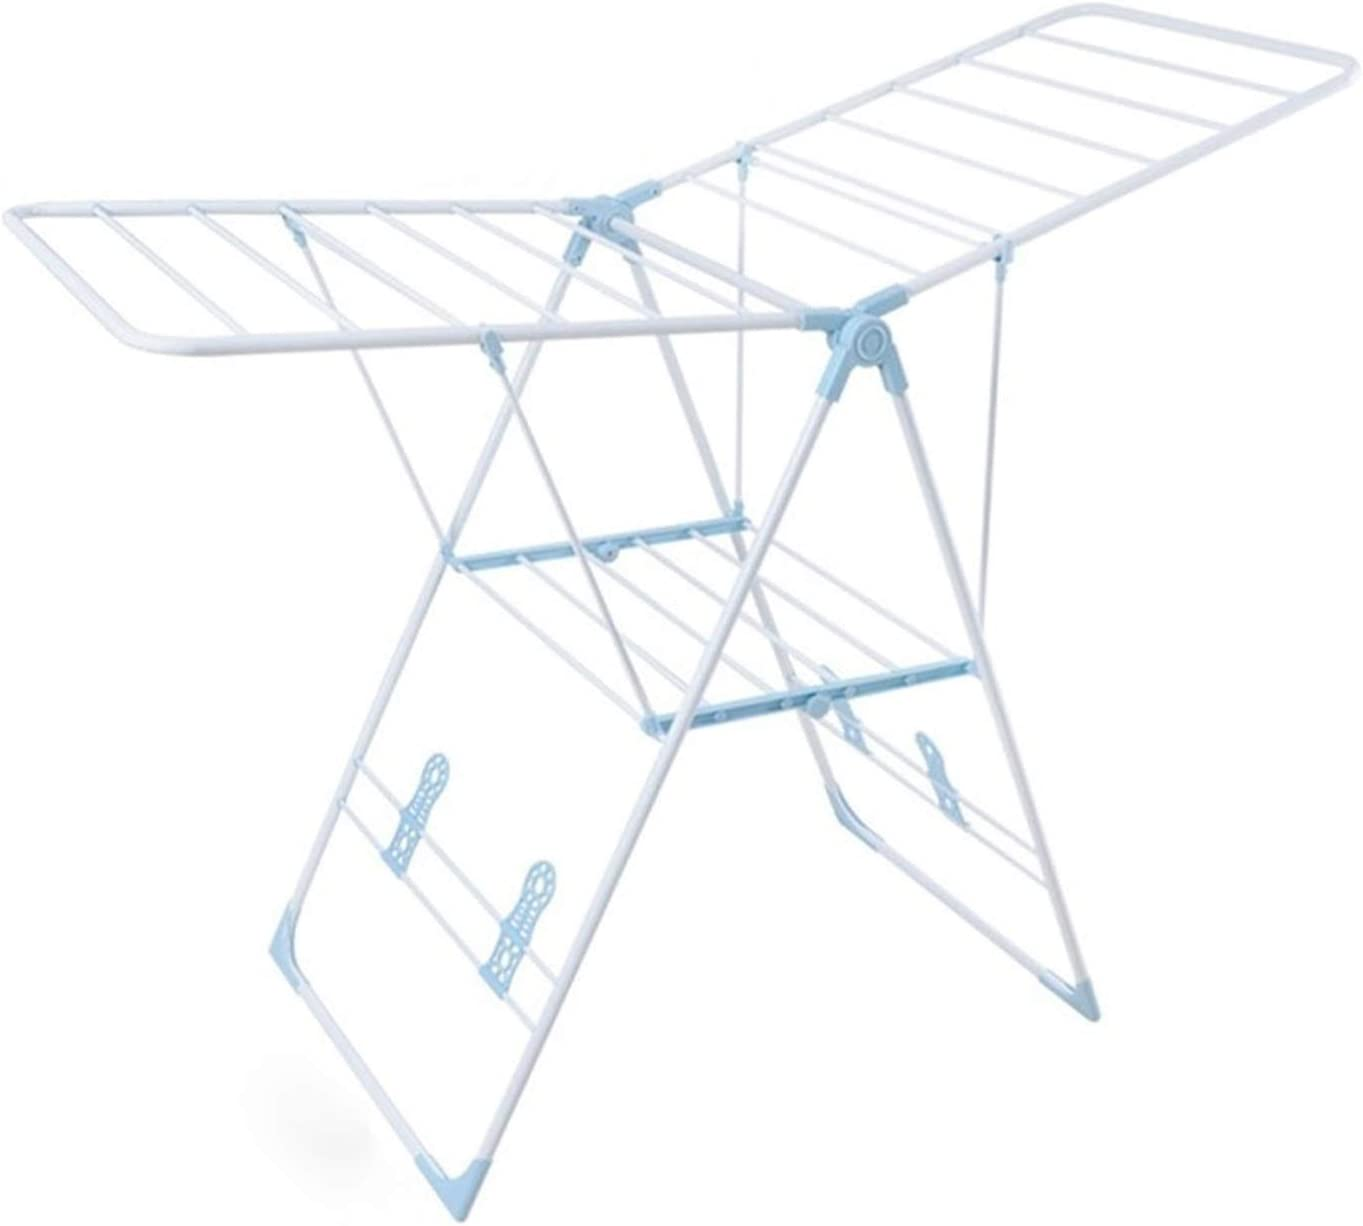 XIAOQIU Direct stock discount Clothes Drying Rack for Airer Laundry Large special price !! Plasti ABS